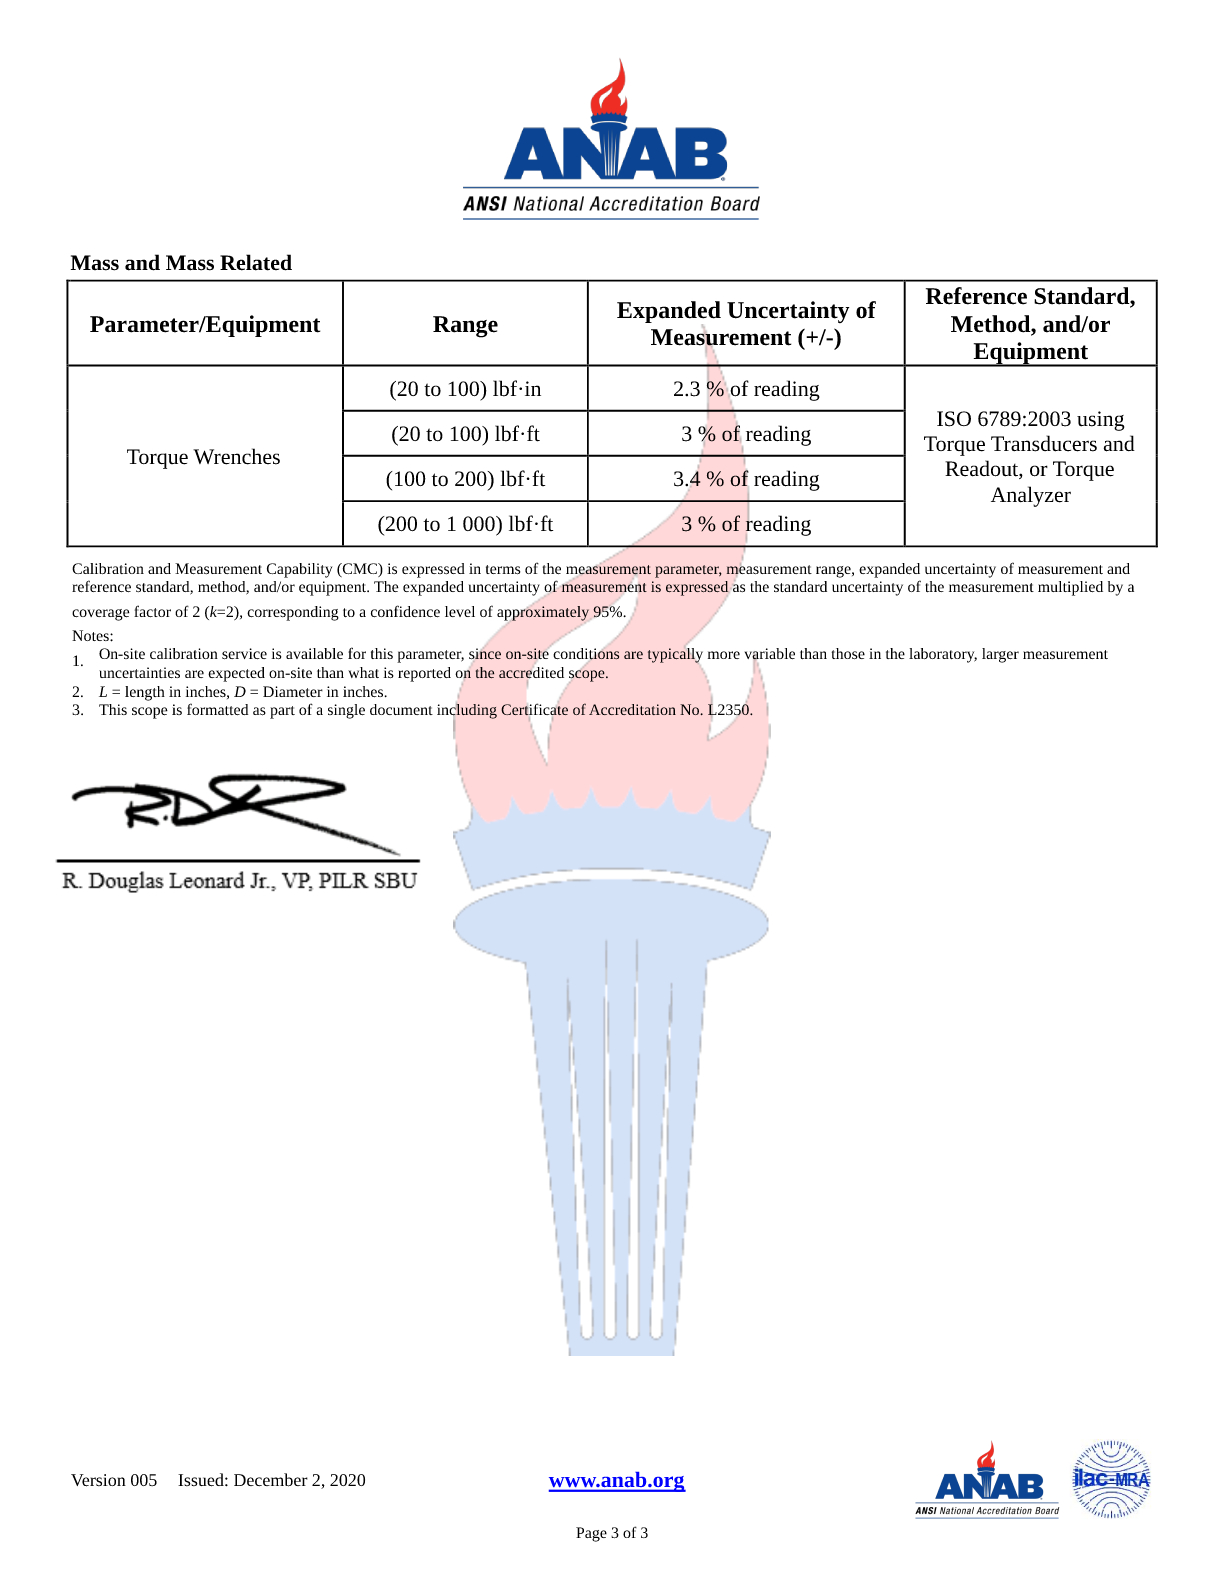 ANAB Certificate of Accreditation page 4